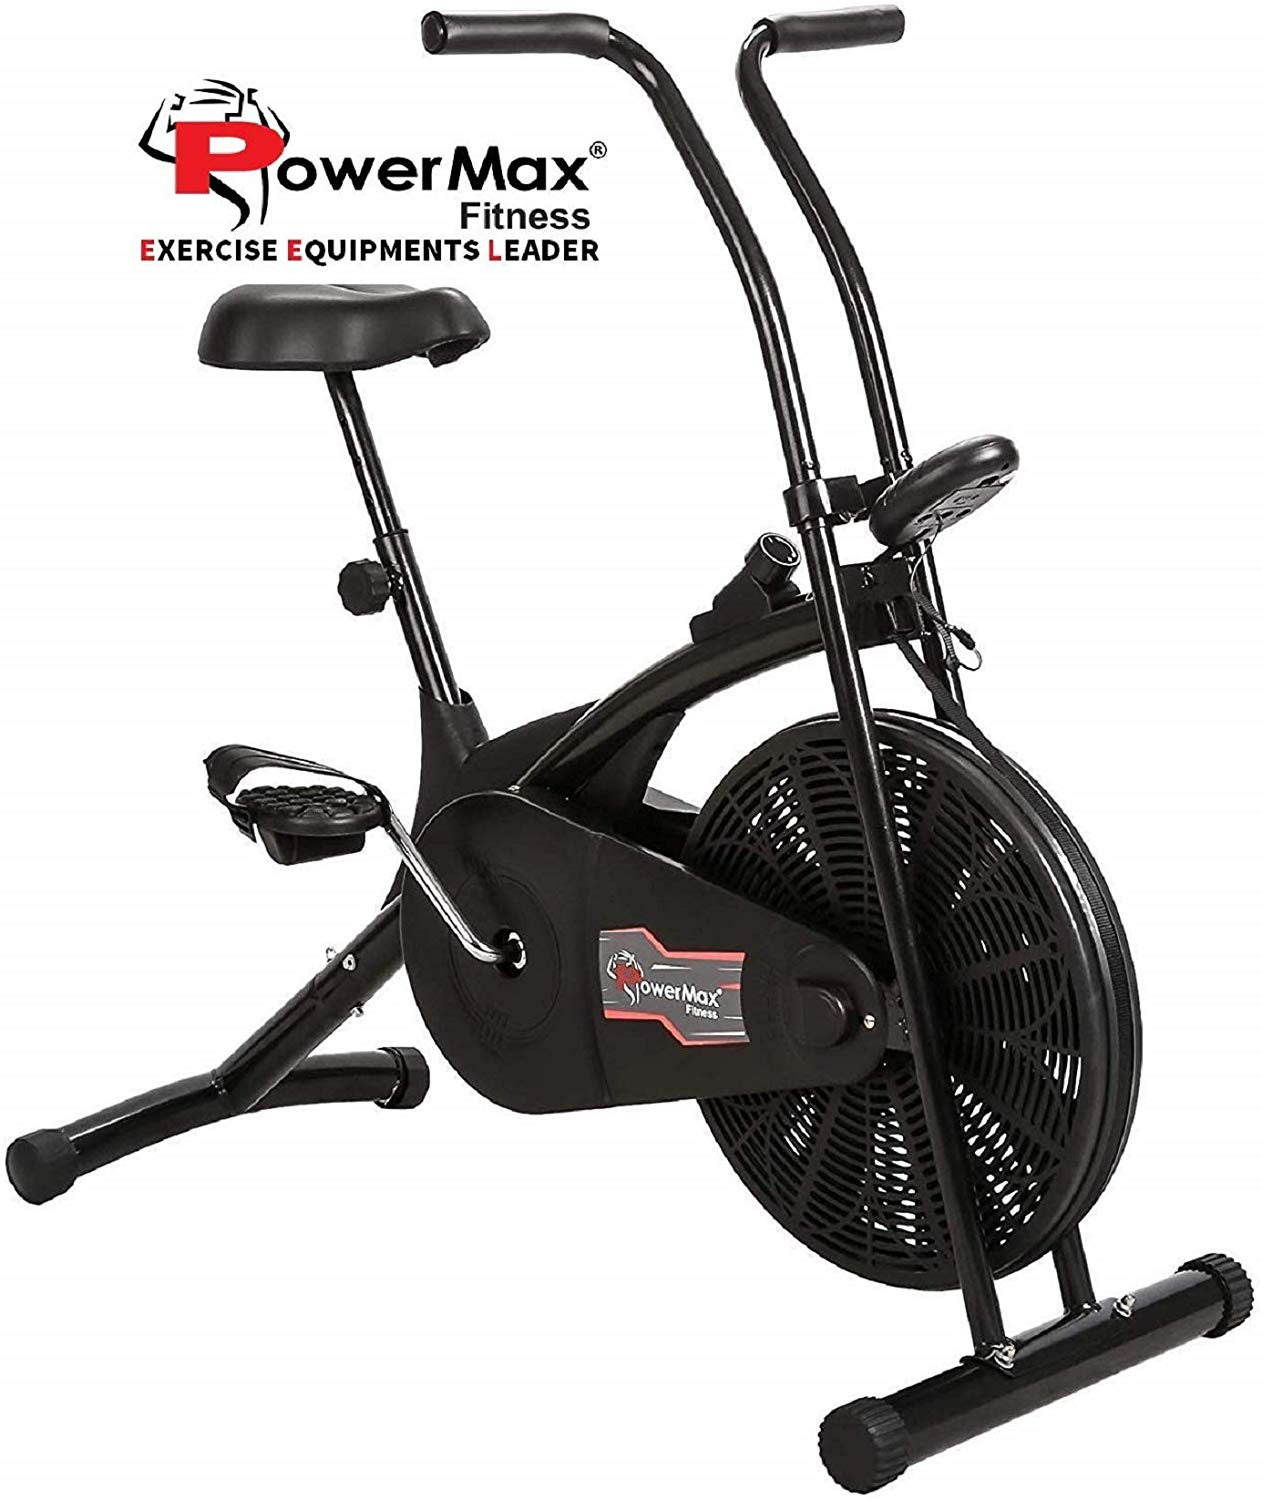 Powermax Fitness BU-203 Air Bike with Fixed Handles - Exercise Cycle for Weight Loss, Cardio Workout